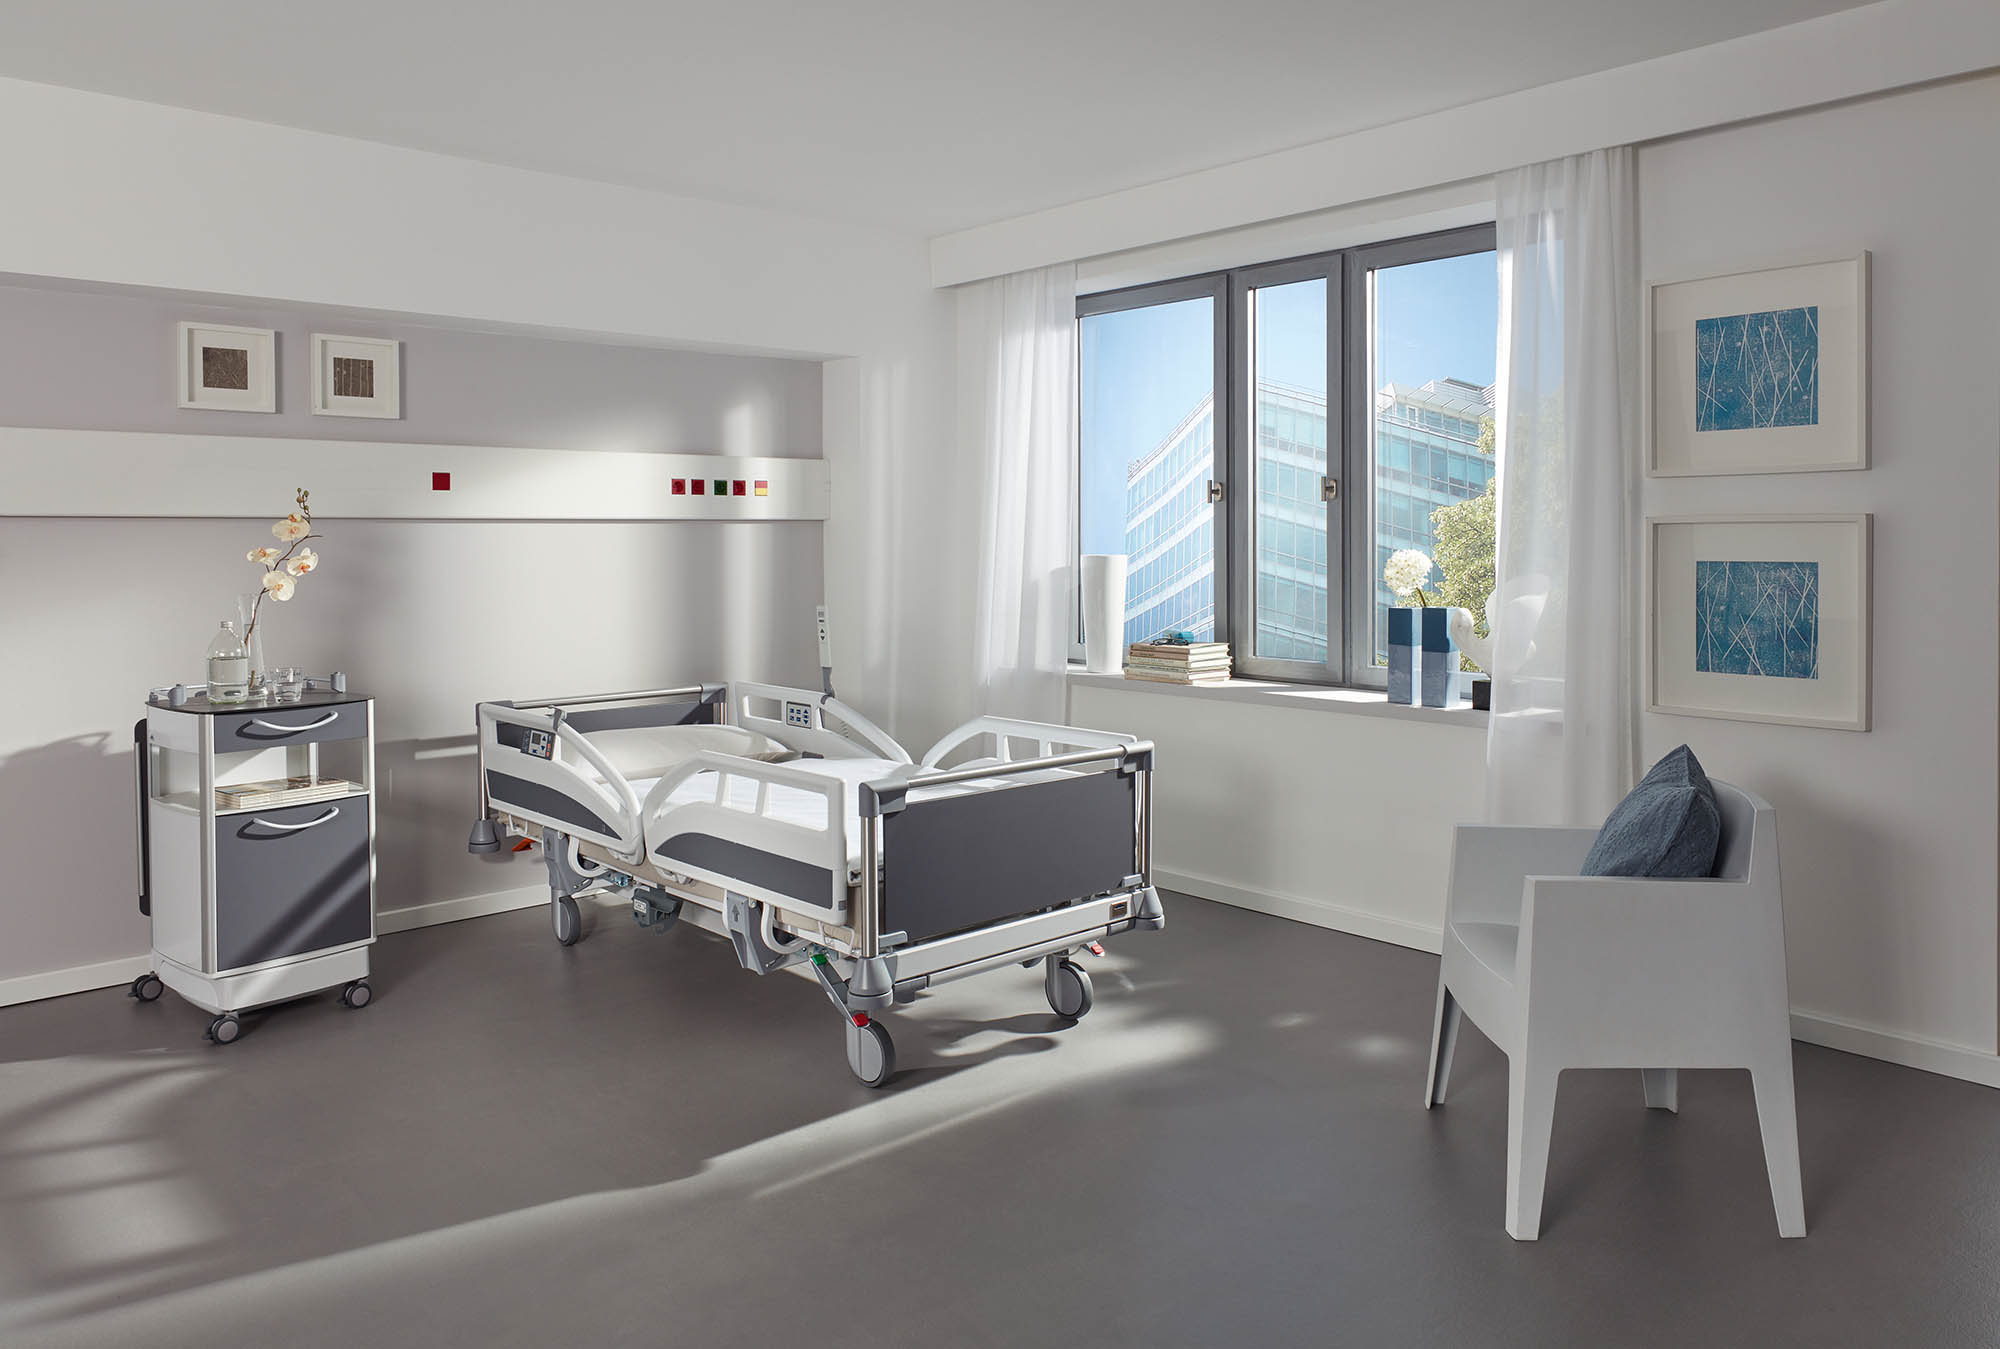 The elegant Stelo head and footboard on the Evario hospital bed